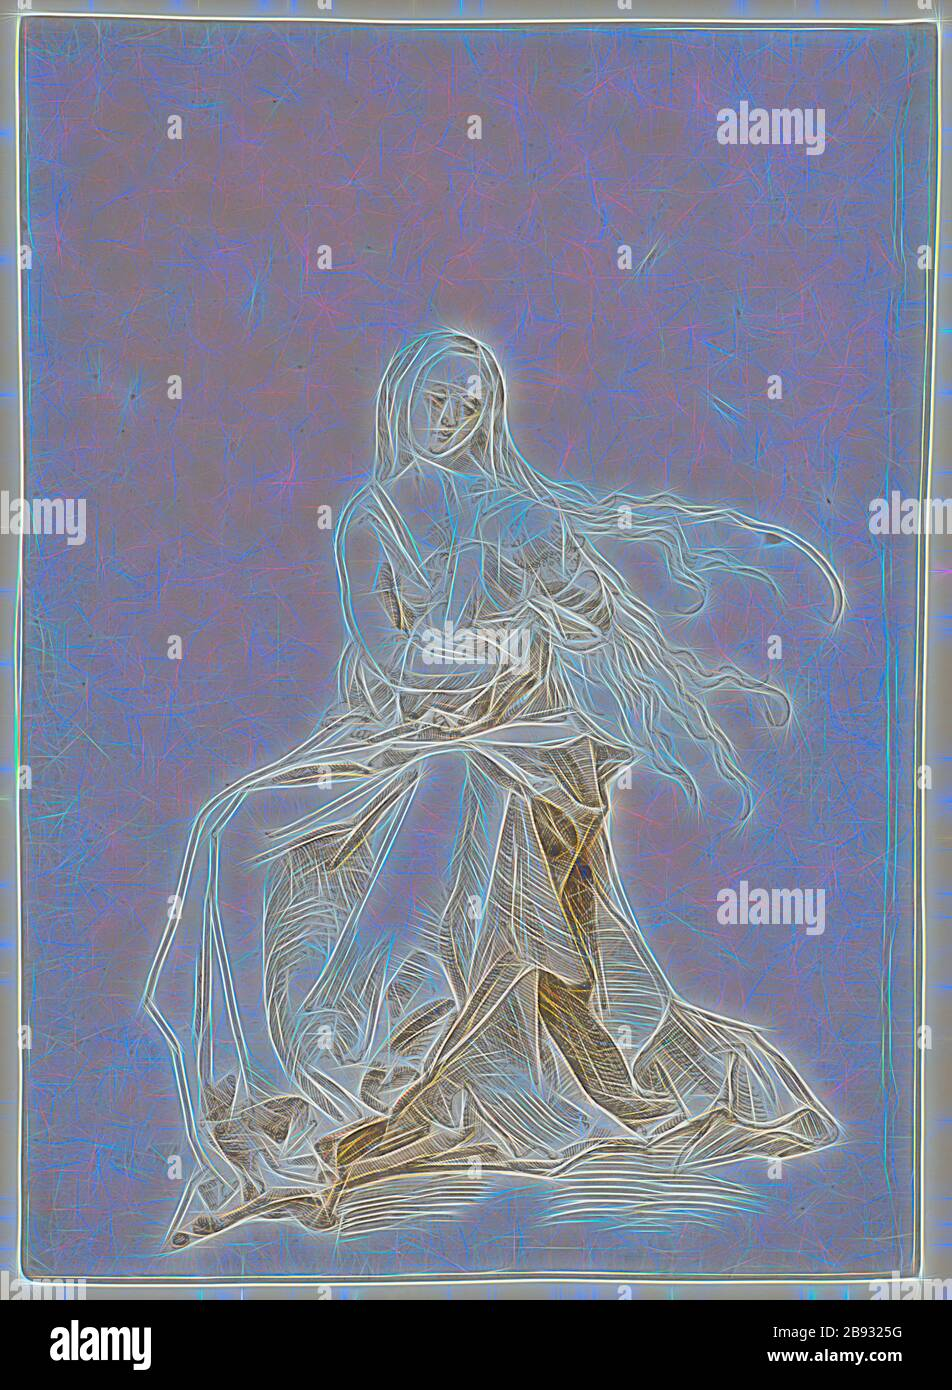 Mary with Child, Feather in Brown, Leaf: 30.5 x 21.7 cm, Not marked, Anonym, Oberrhein (sog. Pseudo-Leu), Reimagined by Gibon, design of warm cheerful glowing of brightness and light rays radiance. Classic art reinvented with a modern twist. Photography inspired by futurism, embracing dynamic energy of modern technology, movement, speed and revolutionize culture. Stock Photo